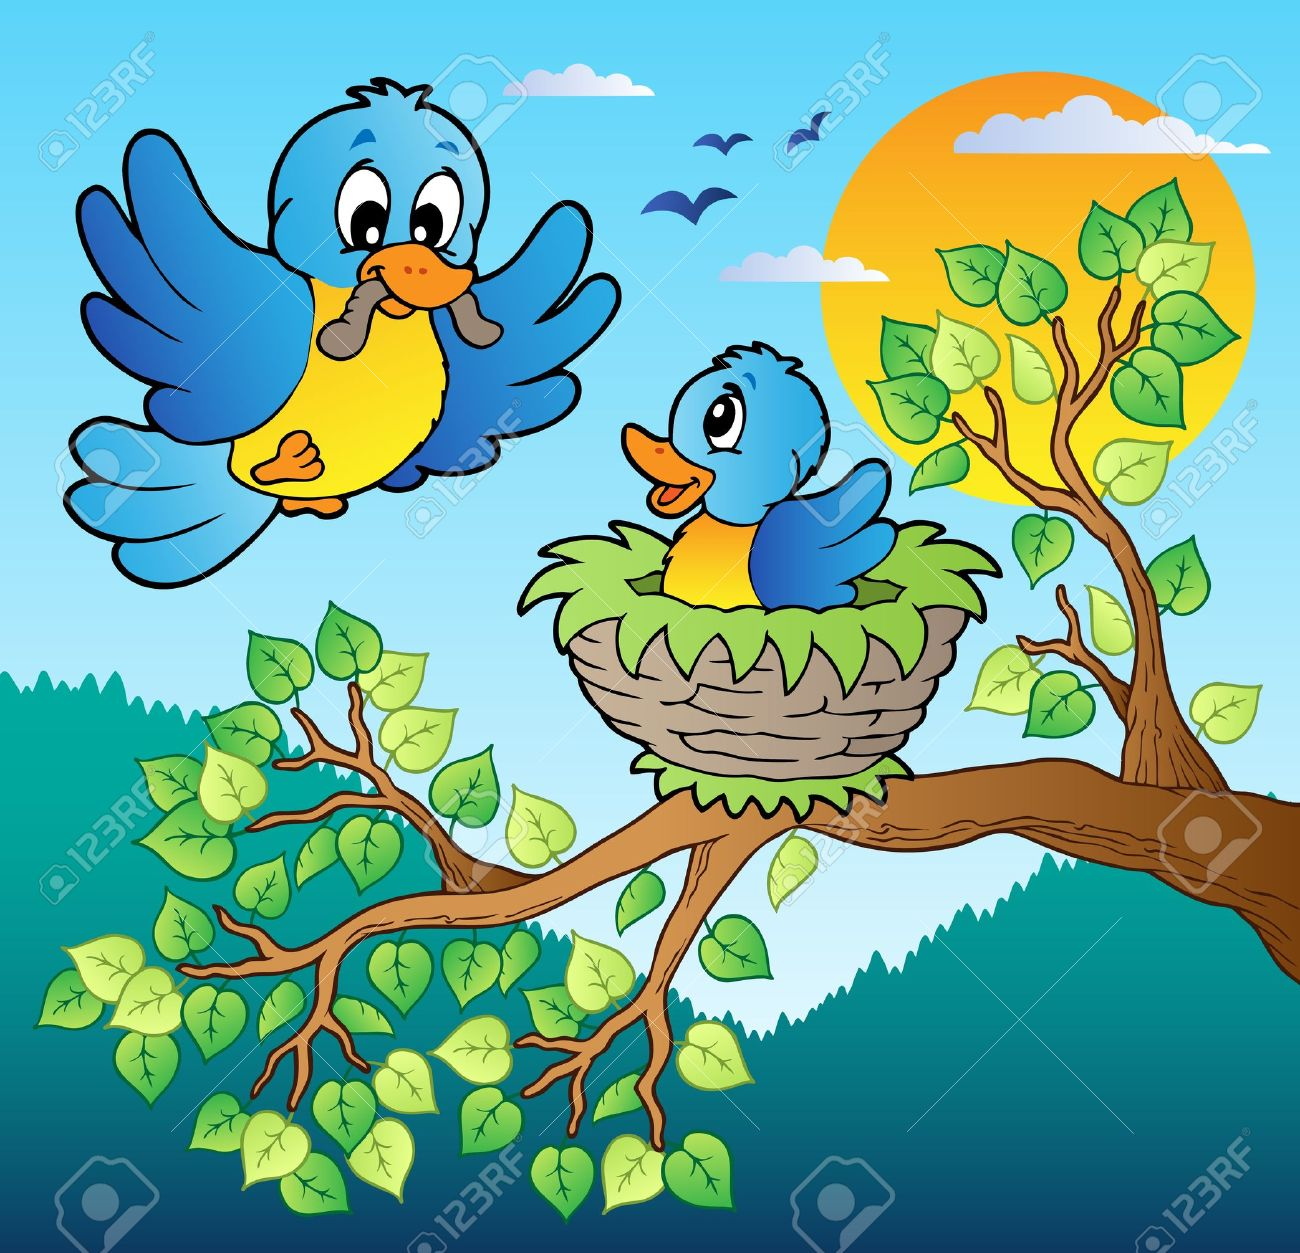 Two blue birds with tree branch - vector illustration. Stock Vector - 11918008